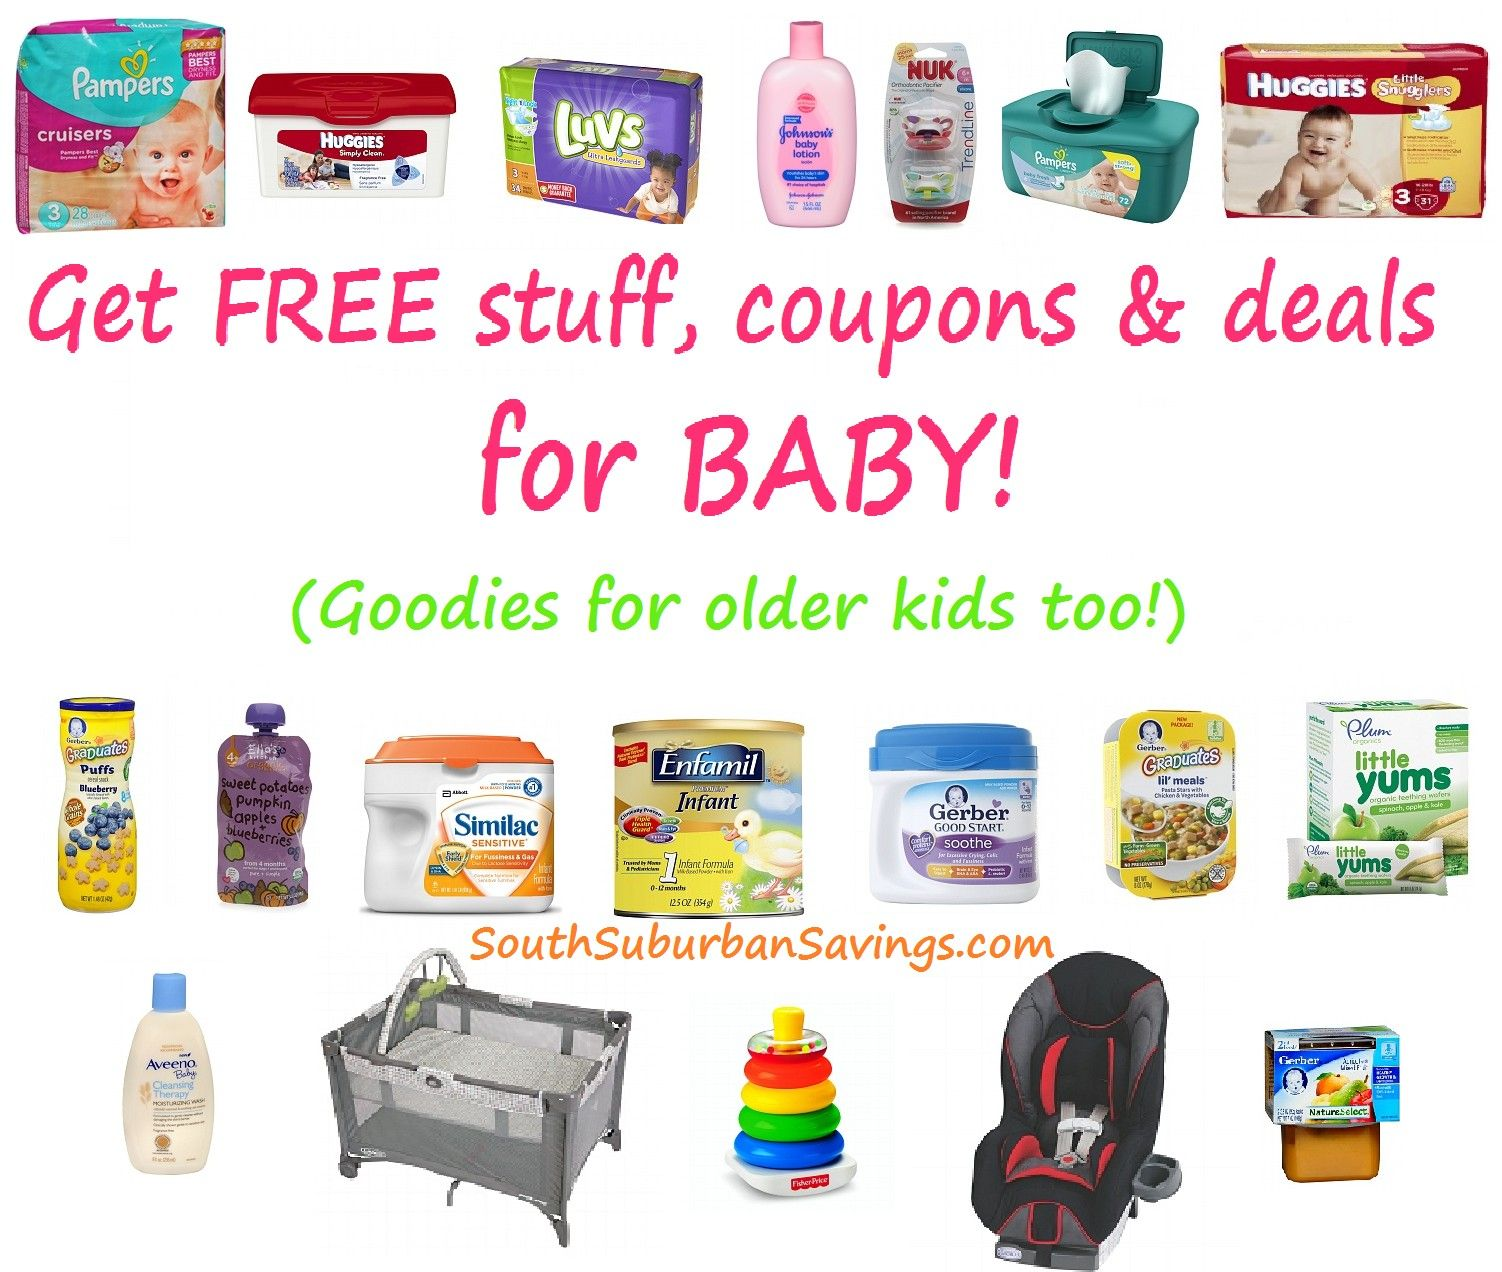 Huge List Of Deals On Diapers Wipes Baby Food Toys Playyards Etc Freebies Amp Links To Printable Coupons To Baby Coupons Baby Freebies Free Baby Stuff